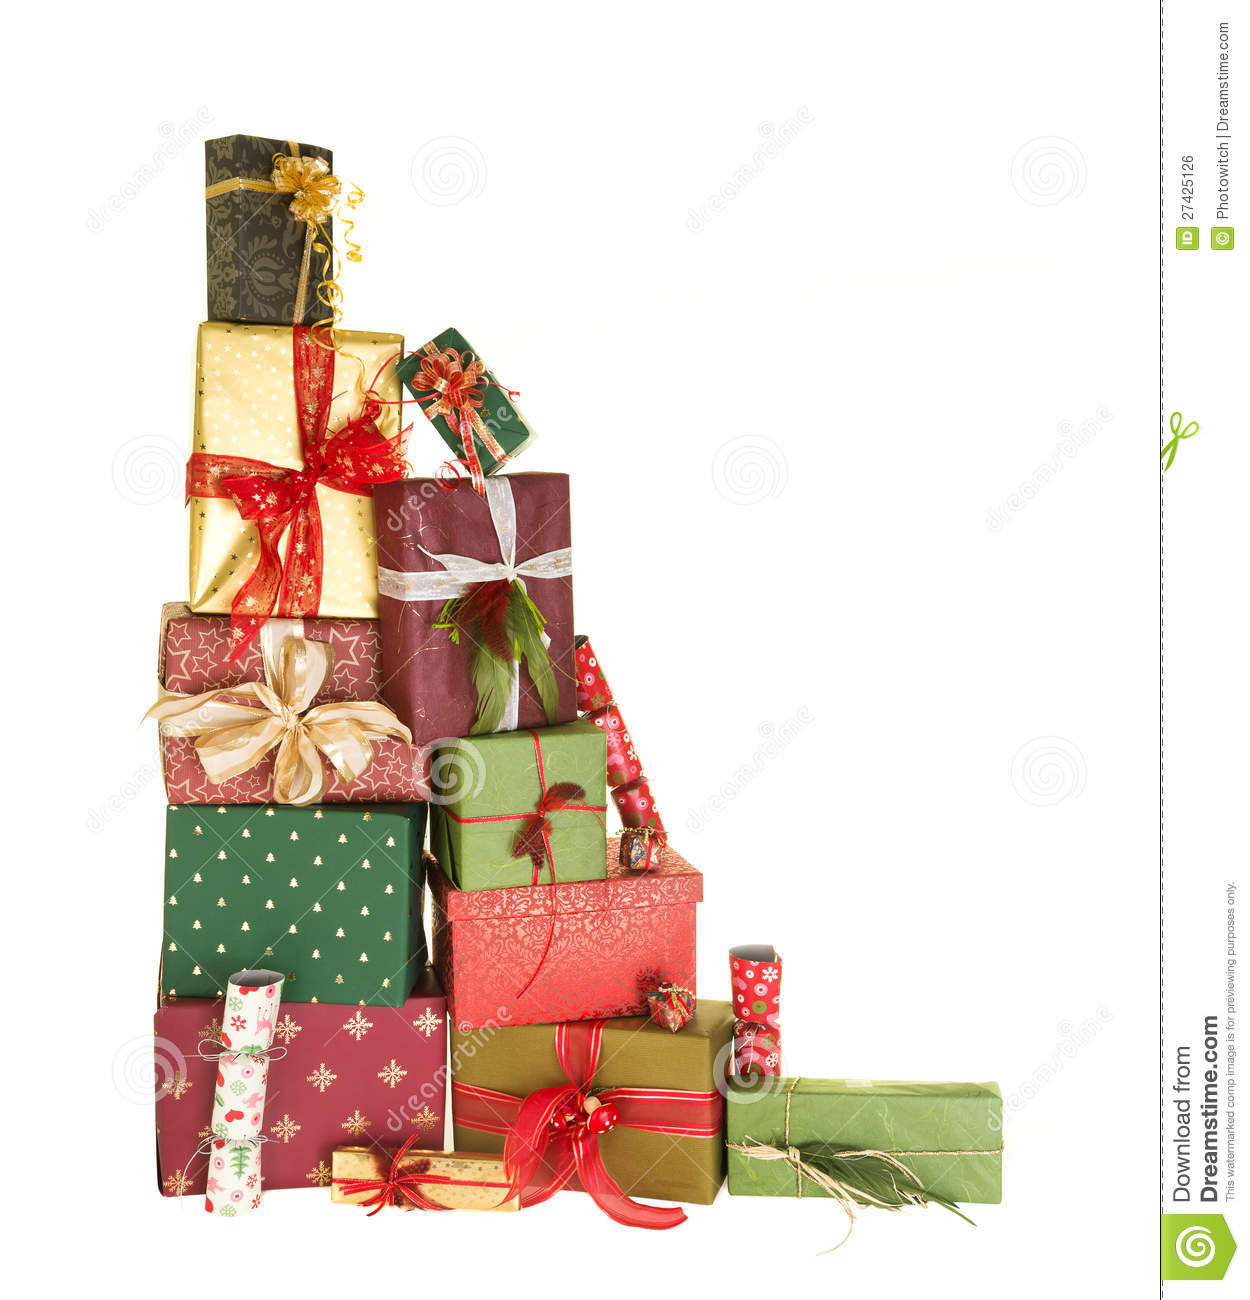 Stack Of Christmas Presents Royalty Free Stock Image - Image: 27425126